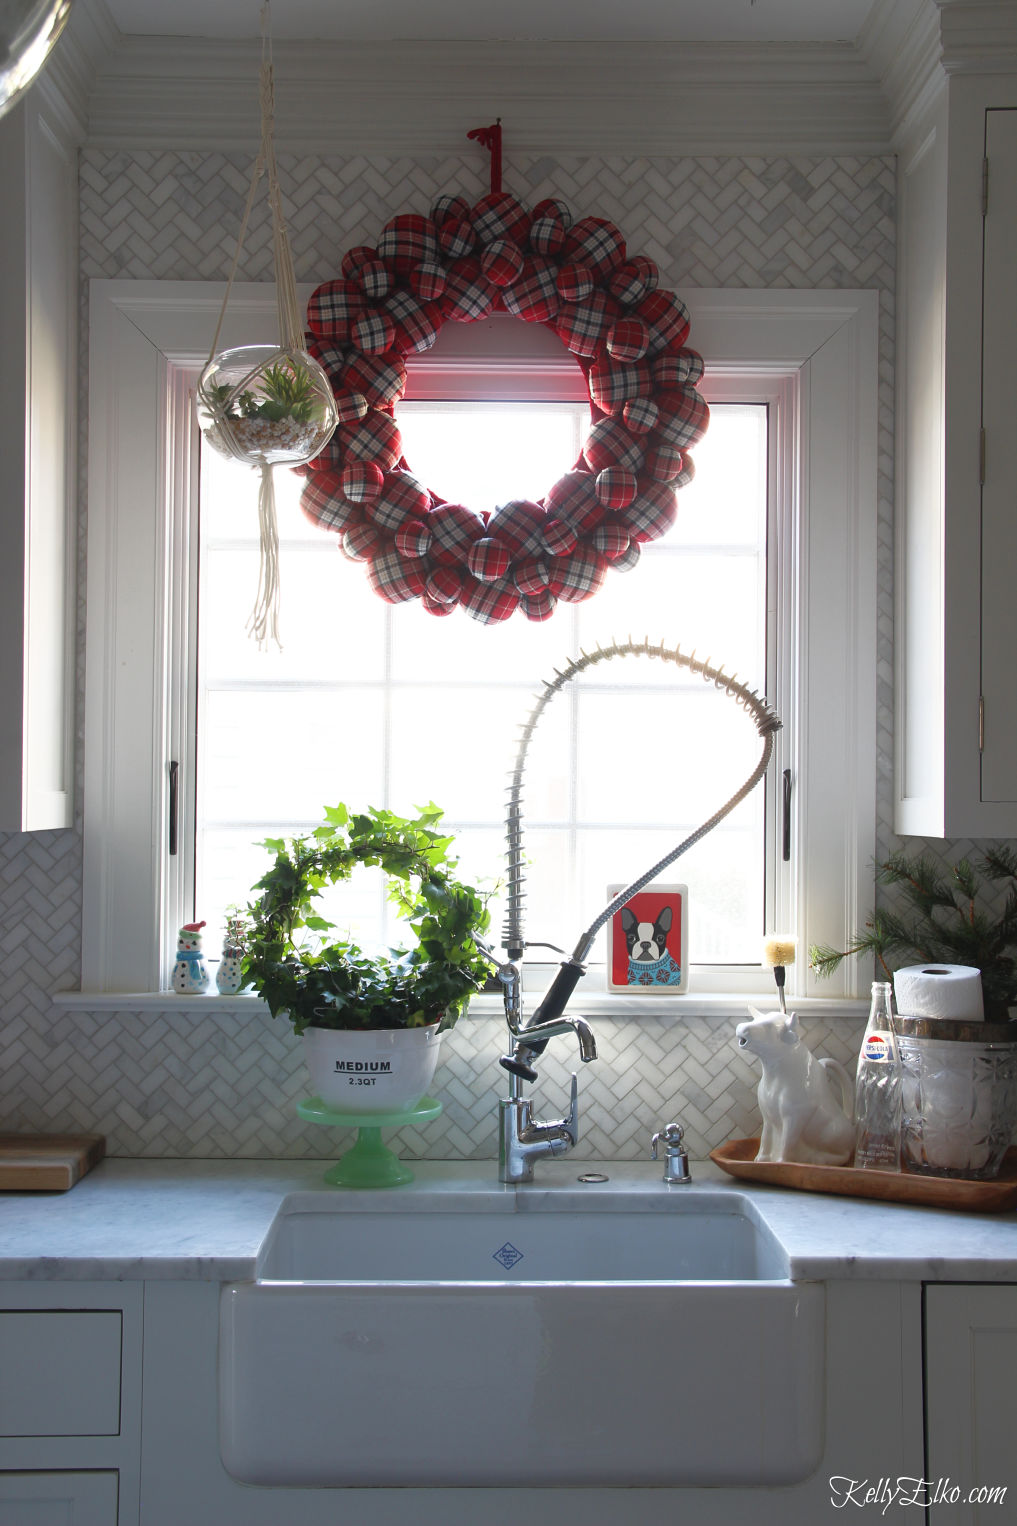 Love this huge plaid wreath in this Christmas kitchen kellyelko.com #christmaskitchen #christmaswreath #plaid #plaidchristmas #farmhousechristmas #whitekitchen #kitchensink